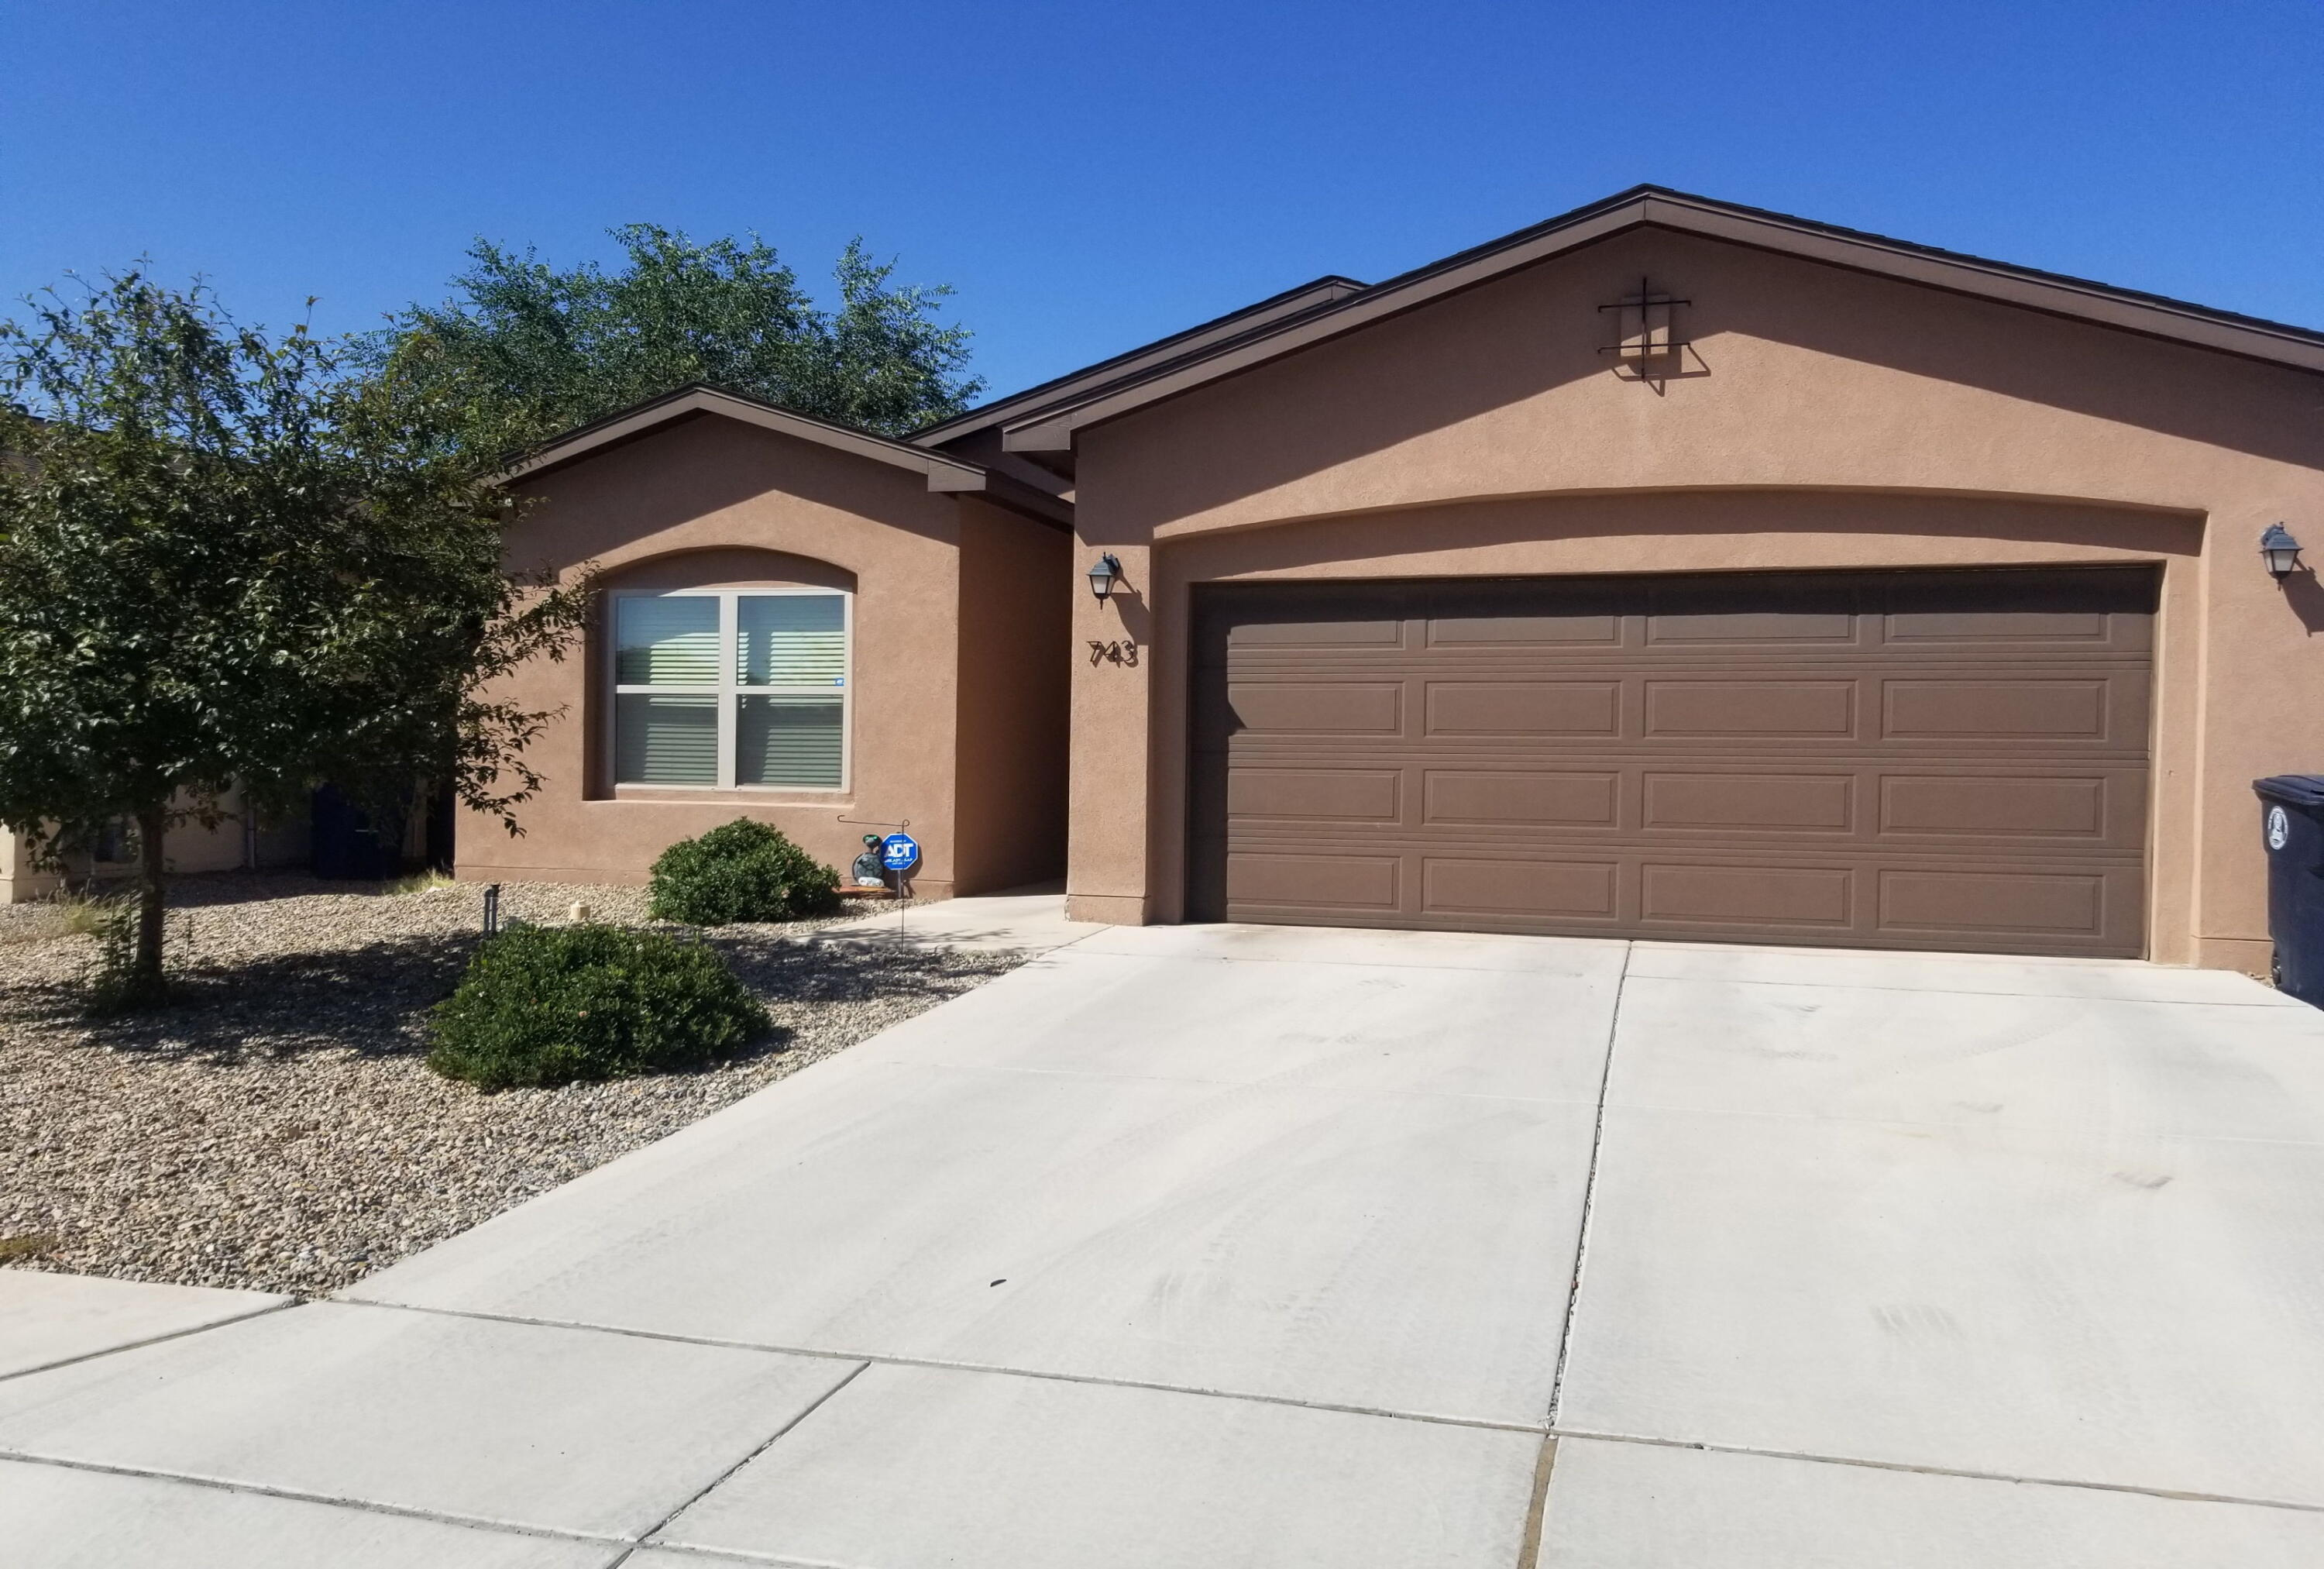 Here is an Abrazo Built Home!  This three-bedroom, two-bath has an open floor plan with high ceilings!  It sports upgraded tile and carpet flooring, stainless steel appliances, bright white quality interior door, contrasting quality paint throughout.  The oversize garage is is very accommodating for larger vehicles or a workshop area.  The backyard has xeriscaped and a nice covered patio with a natural gas stub!